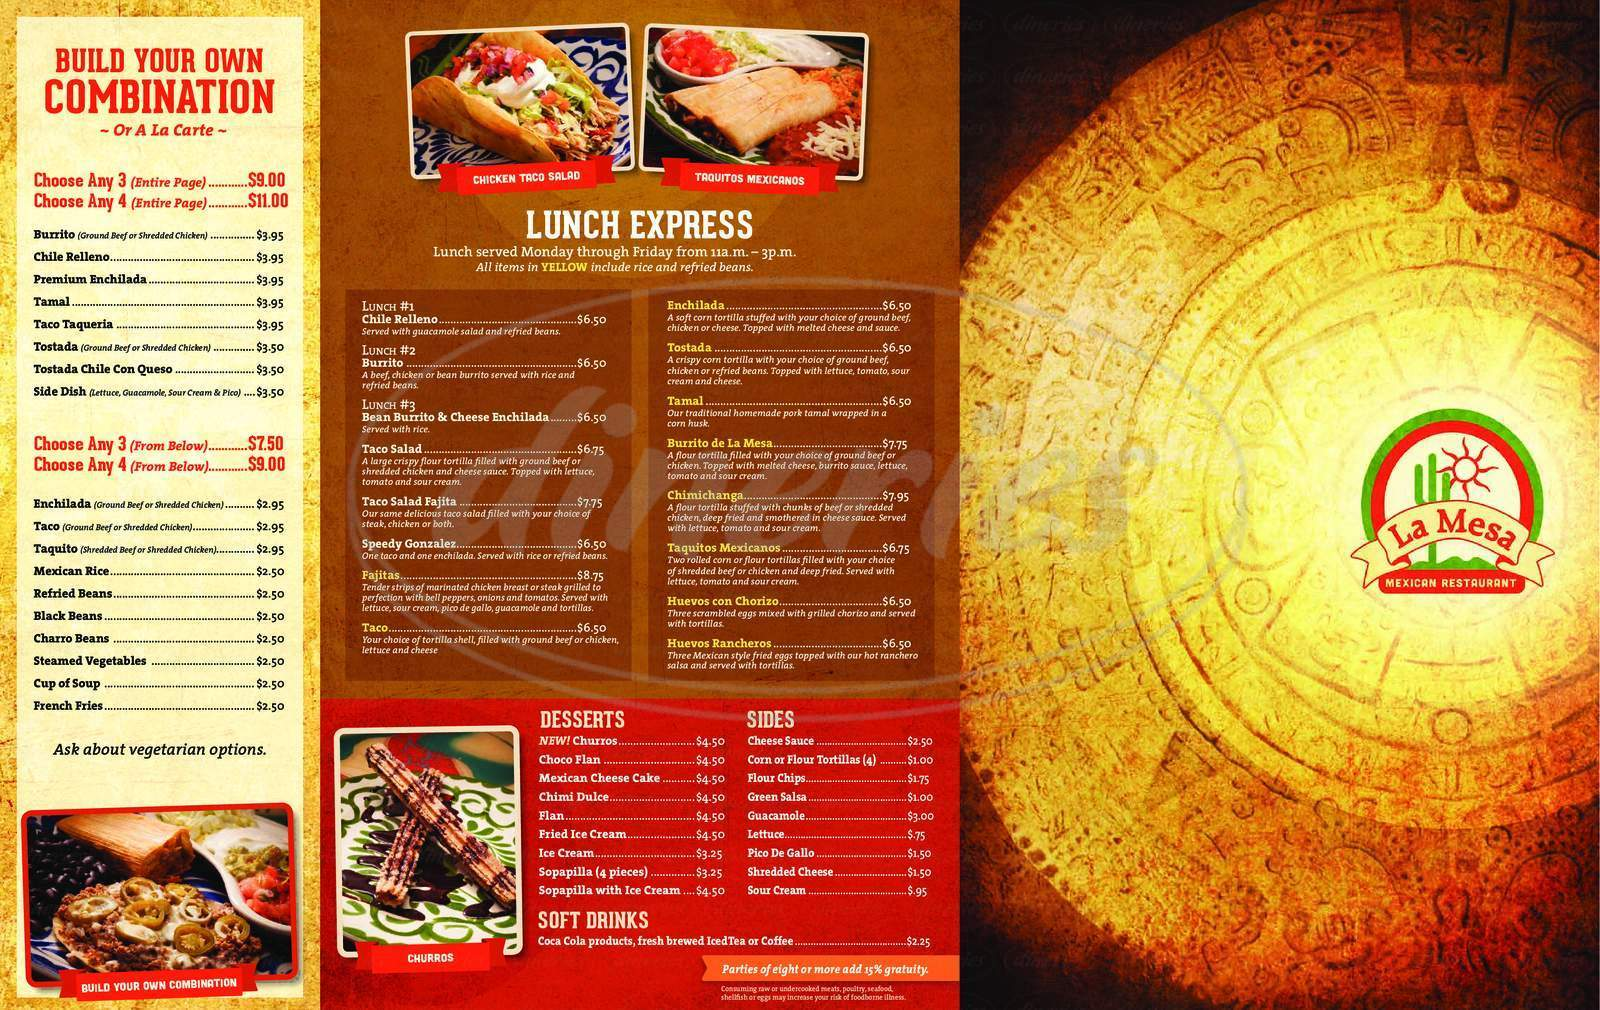 menu for La Mesa Mexican Restaurant